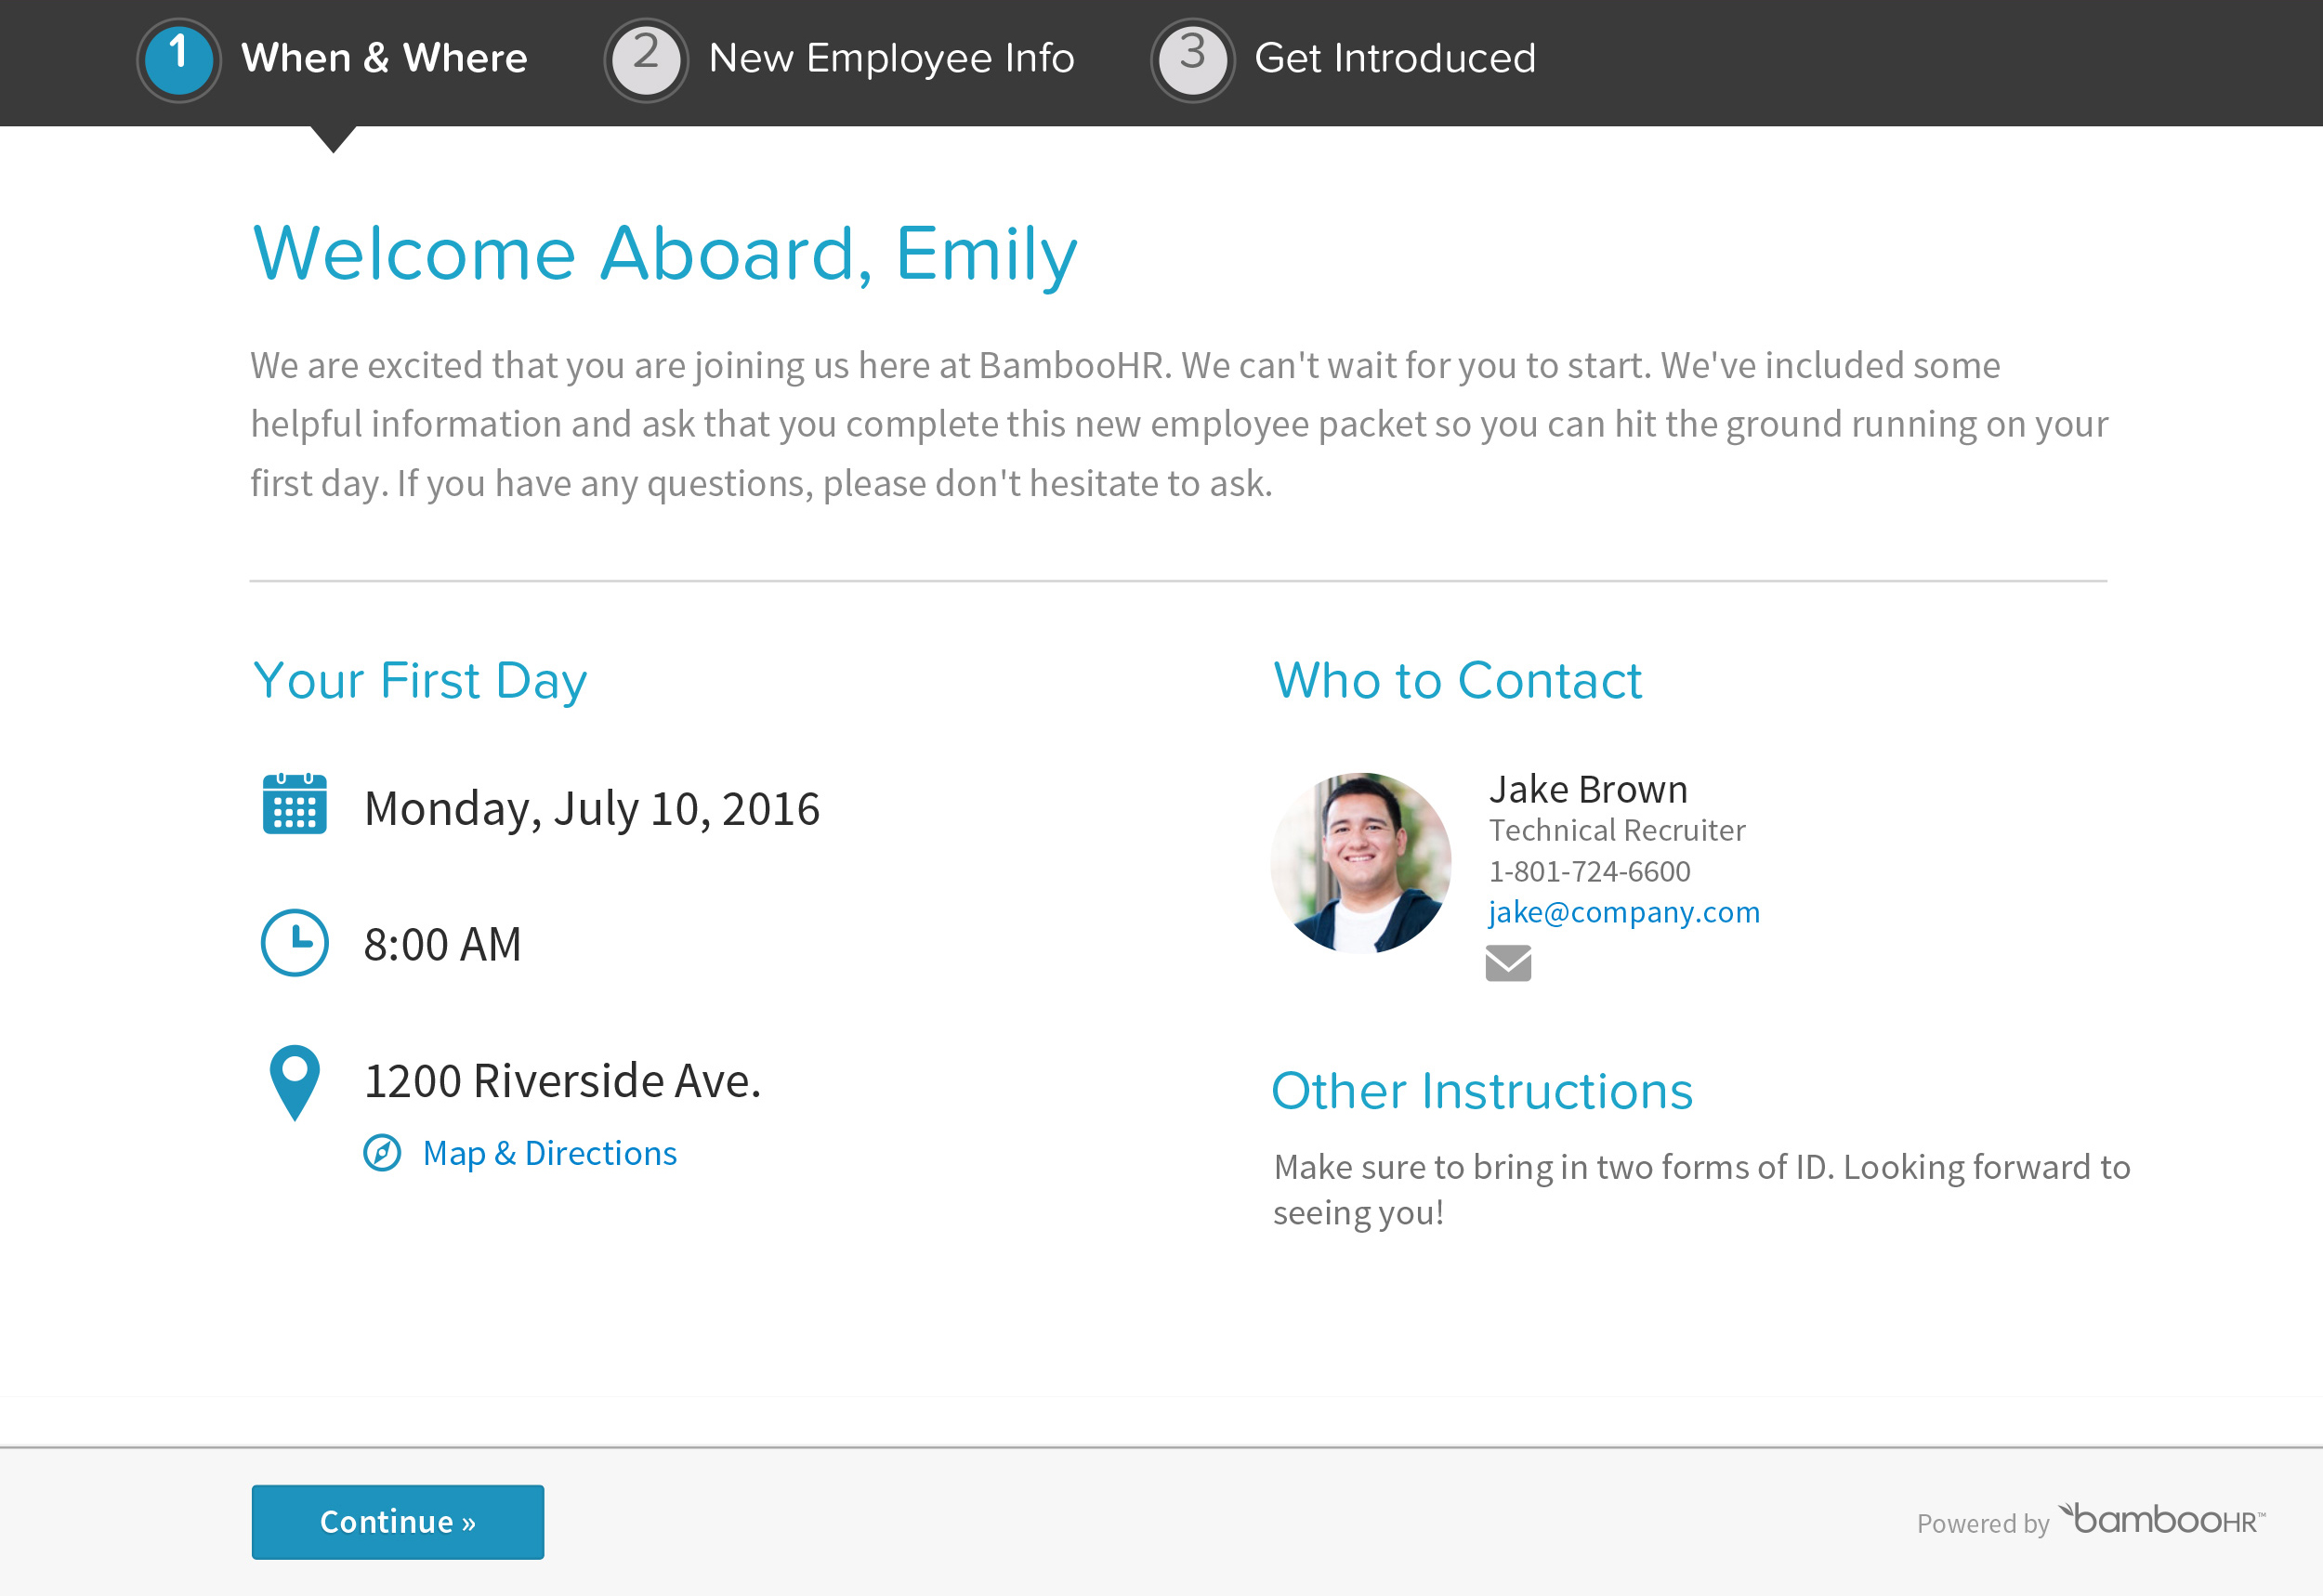 BambooHR helps automate onboarding